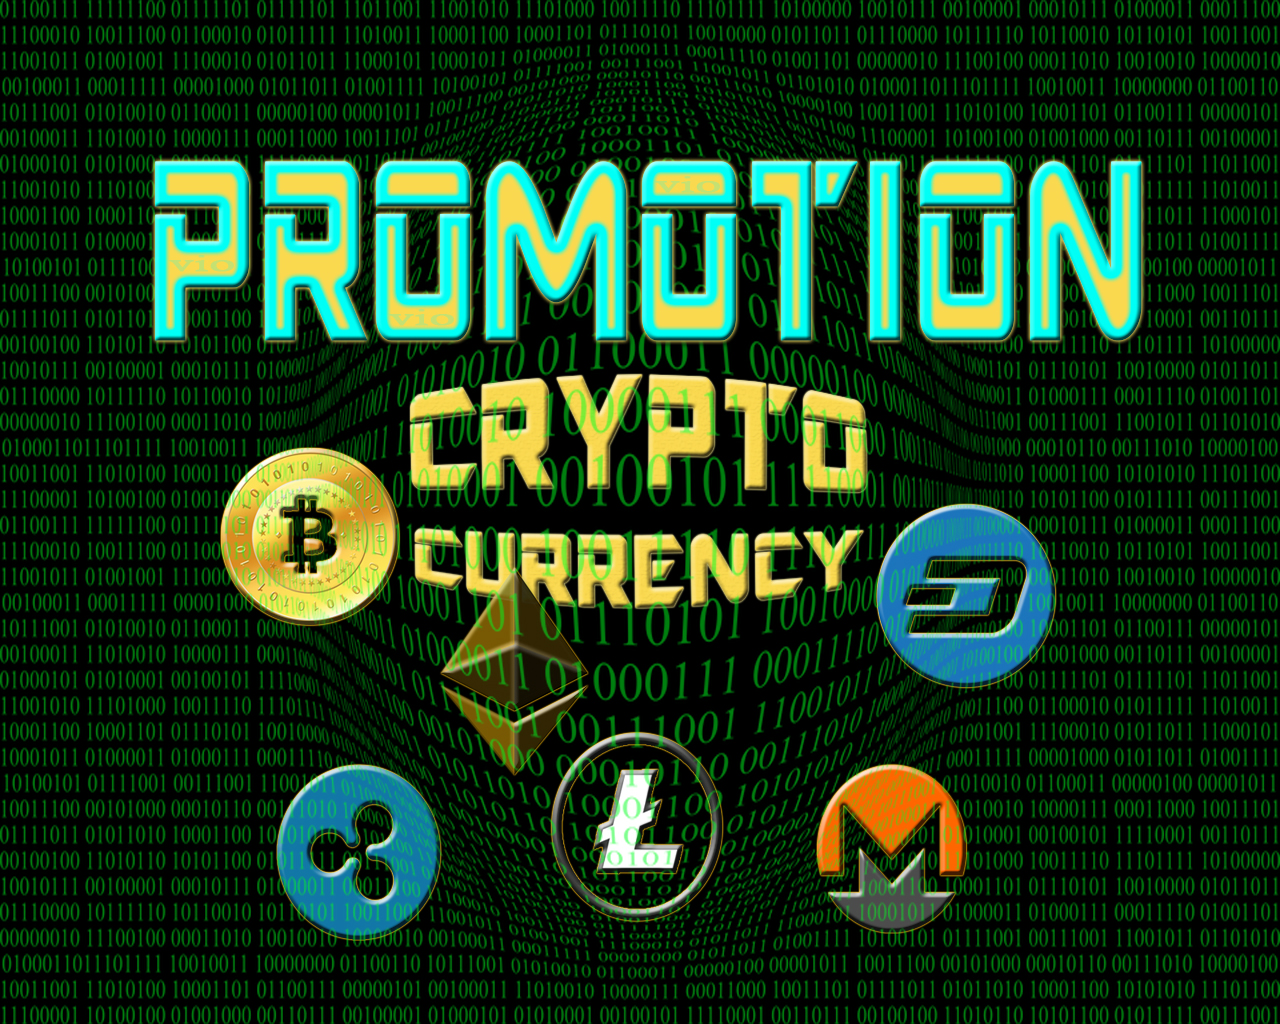 get 6 months targeted traffic for any CRYPTOcurrency related website